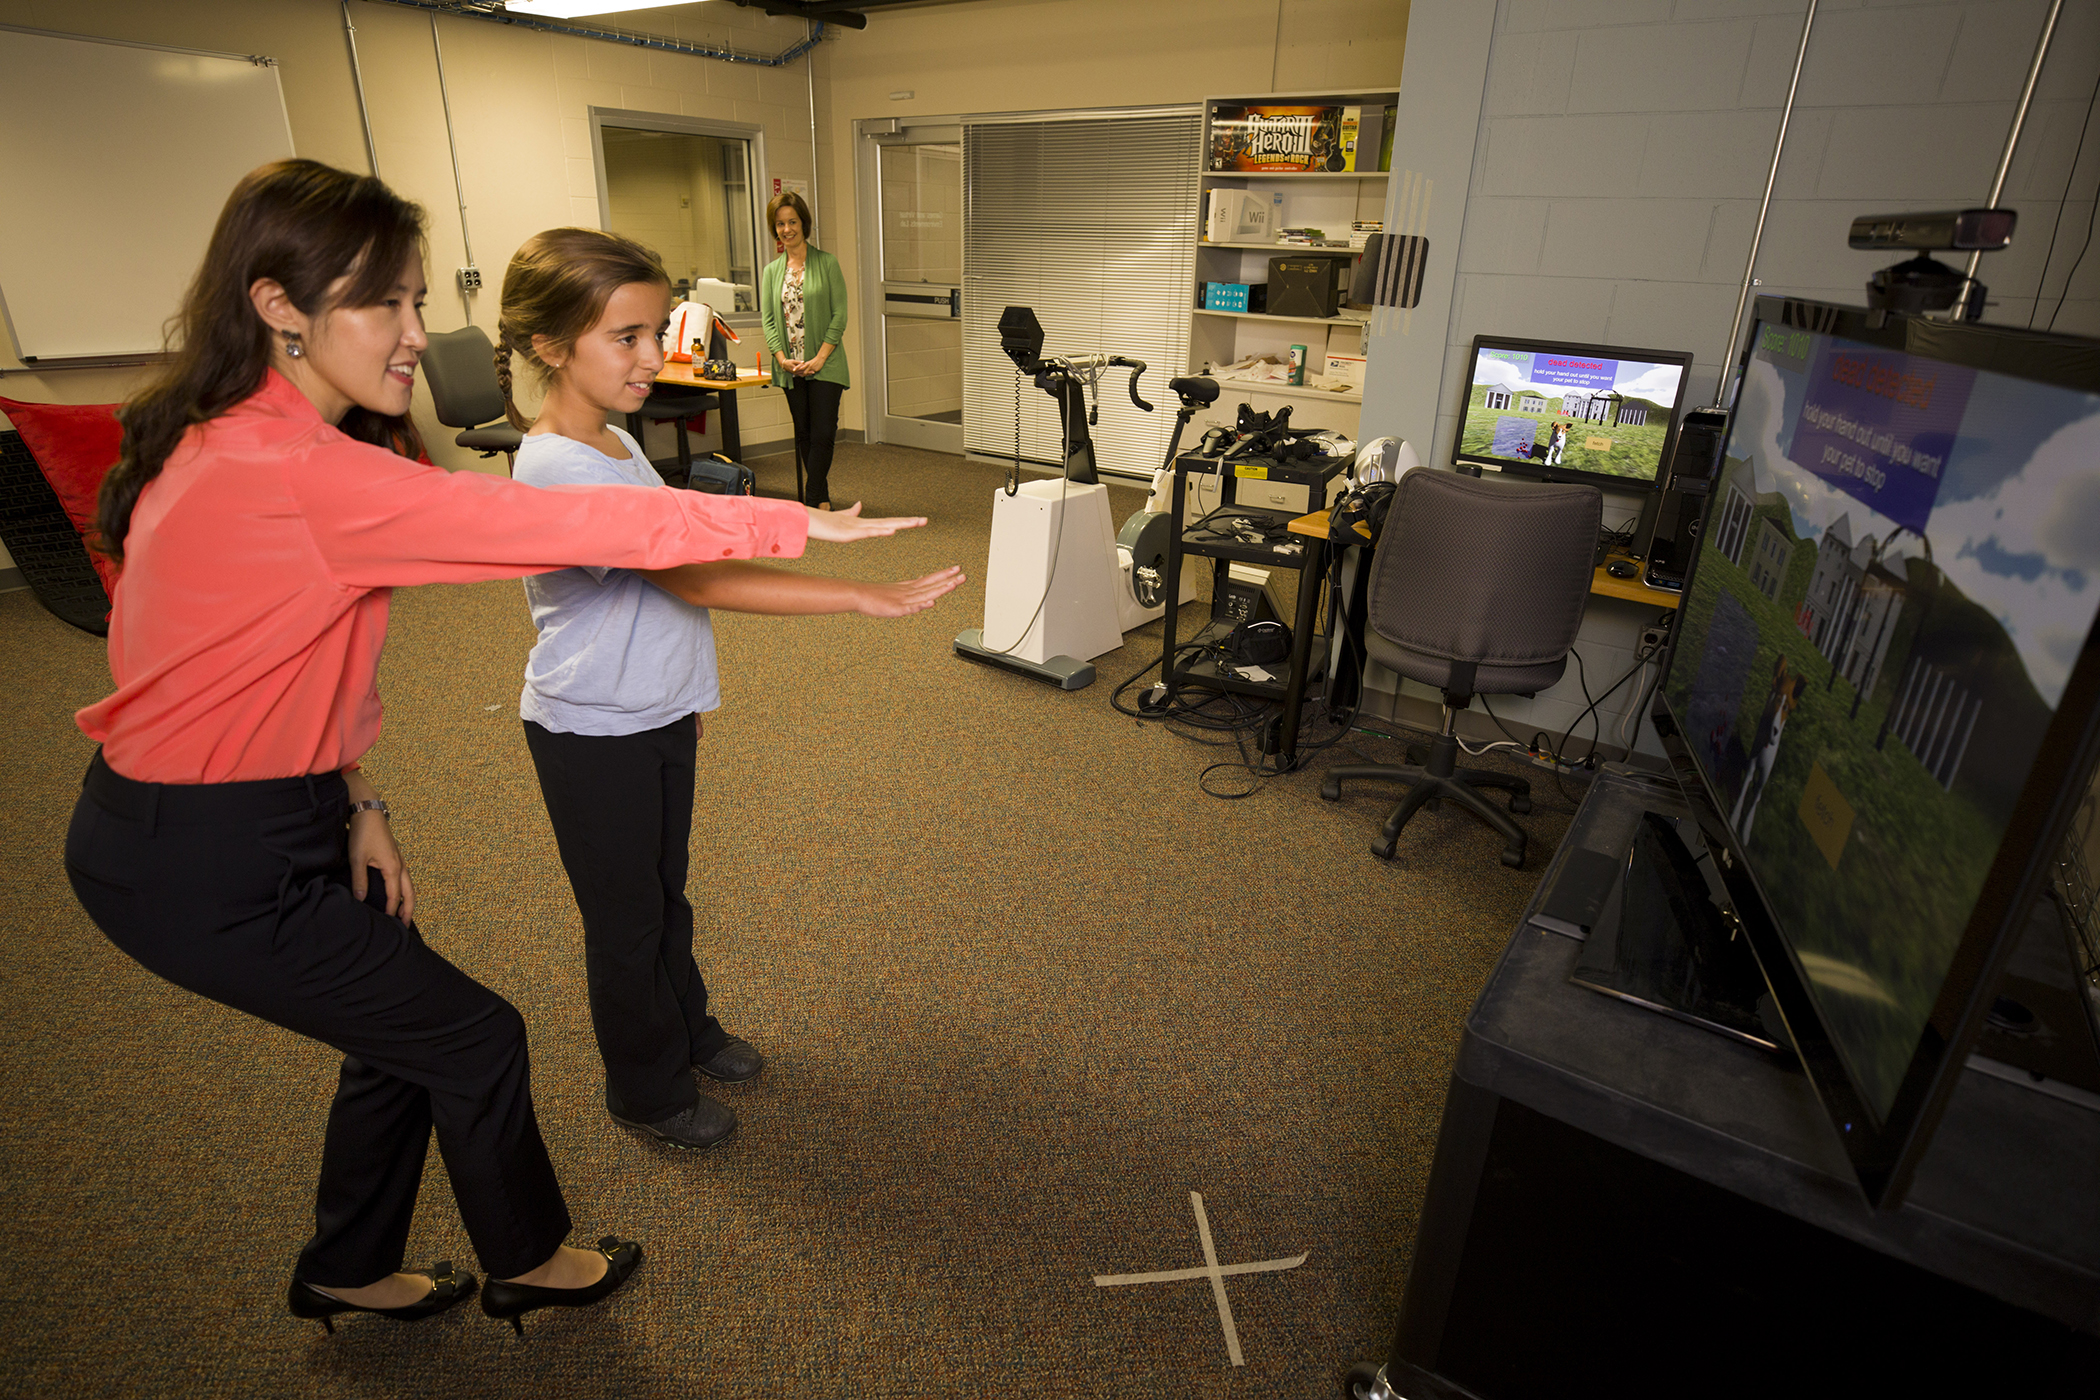 UGA researchers use virtual fitness system to help children exercise more